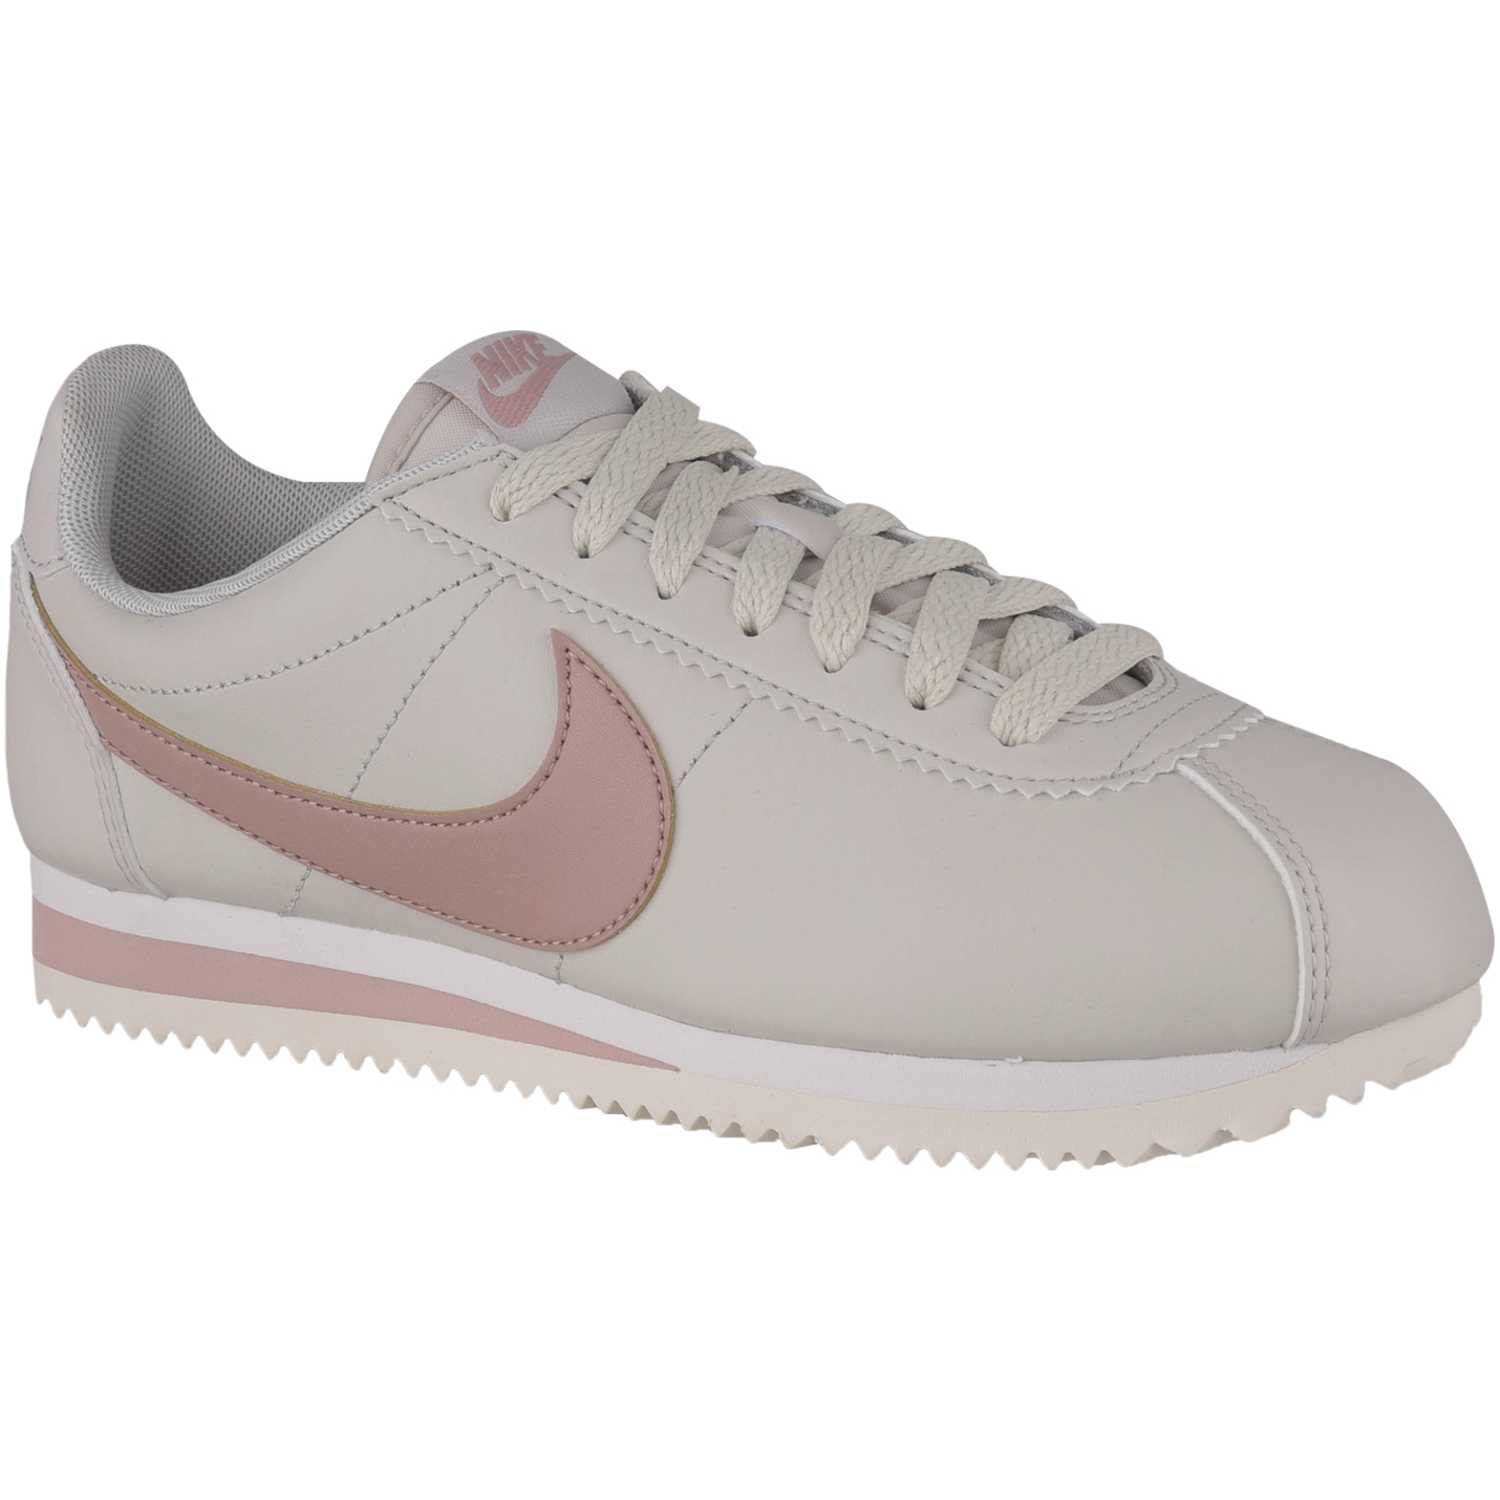 the best attitude 11bac c50e5 Zapatilla de Mujer Nike BERO wmns classic cortez leather